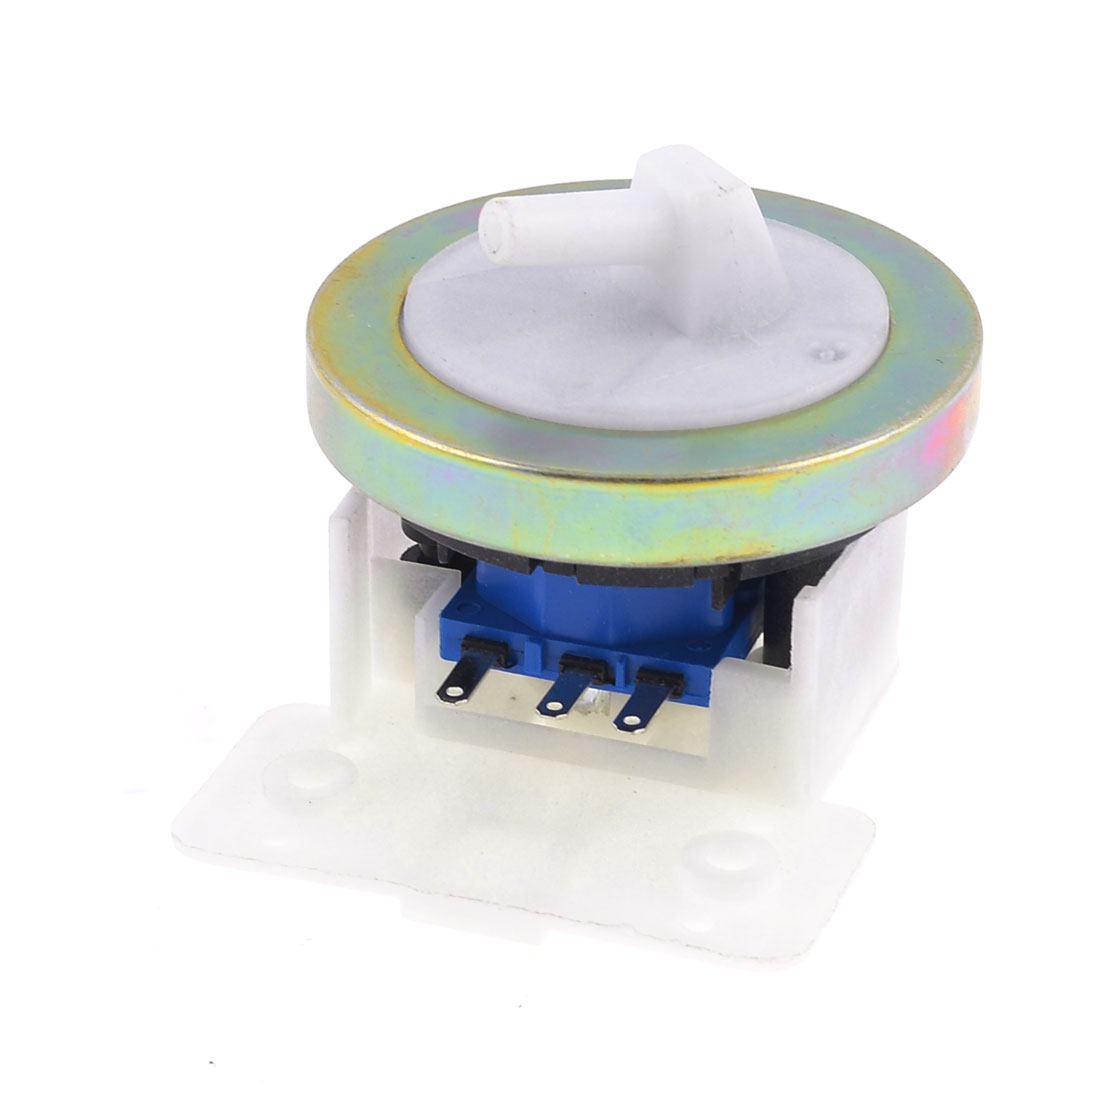 57mm Dia 3 Terminals Water Level Sensor Switch for Washing Machine